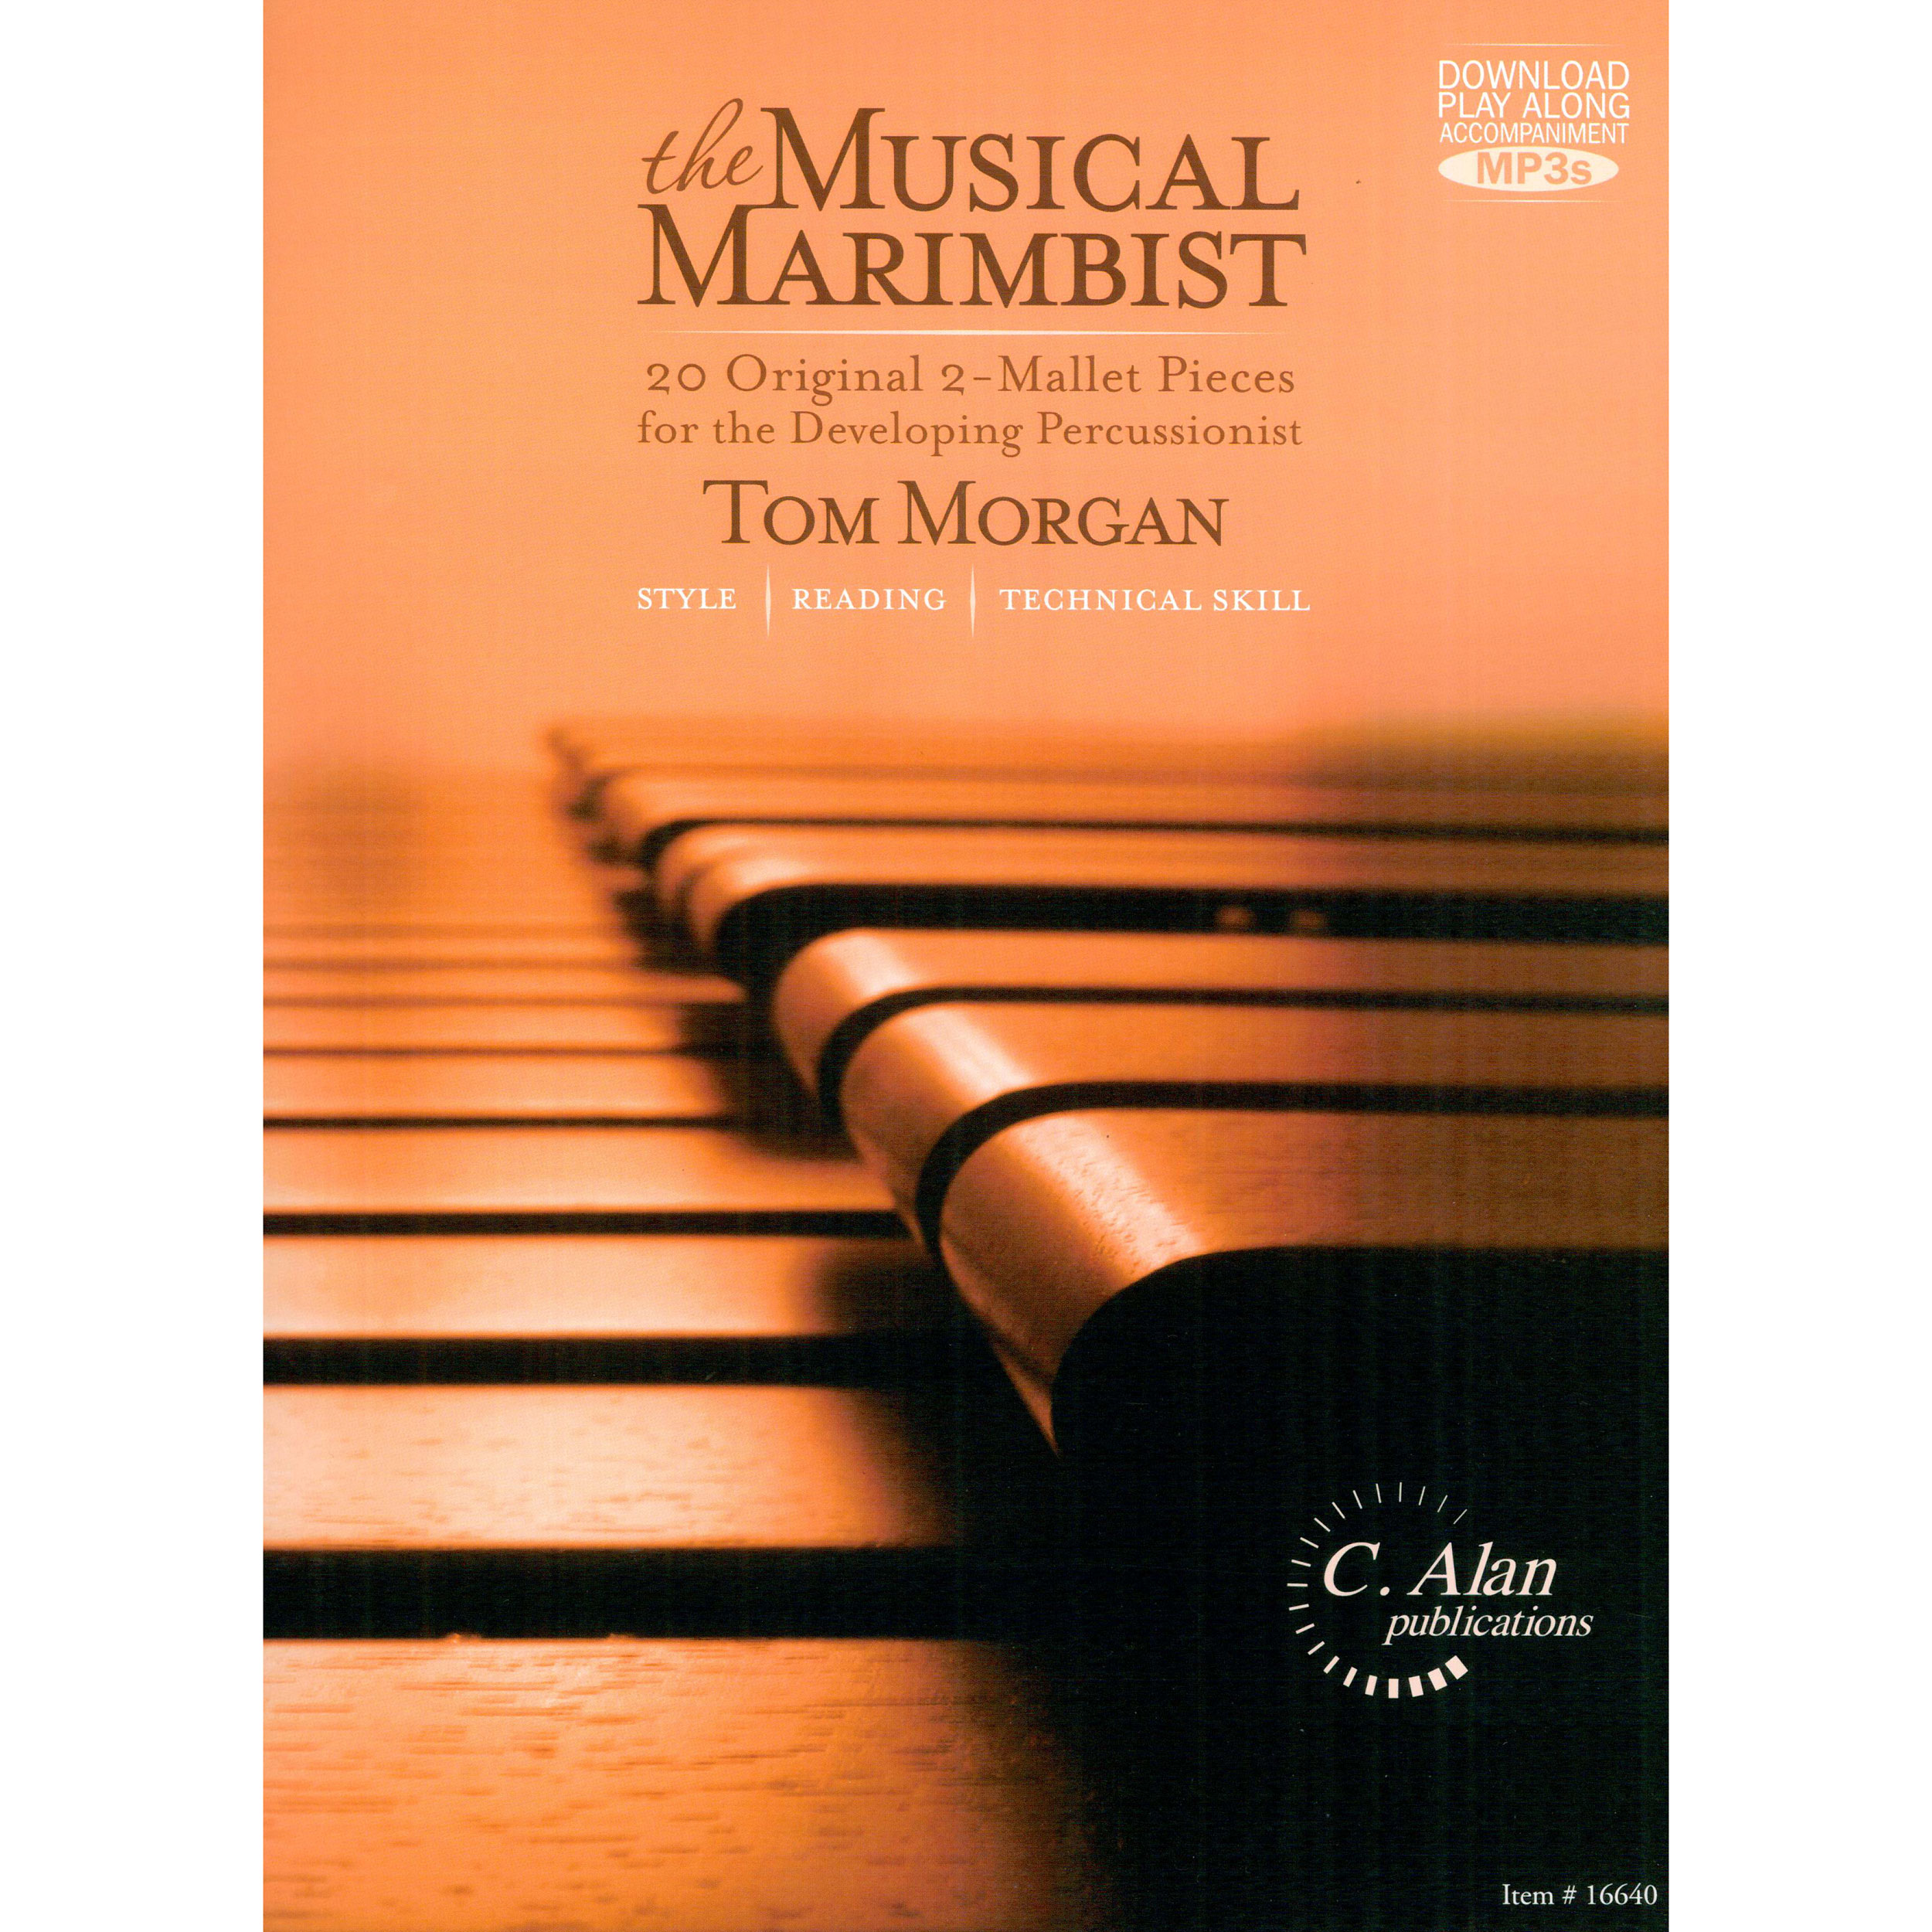 The Musical Marimbist by Tom Morgan